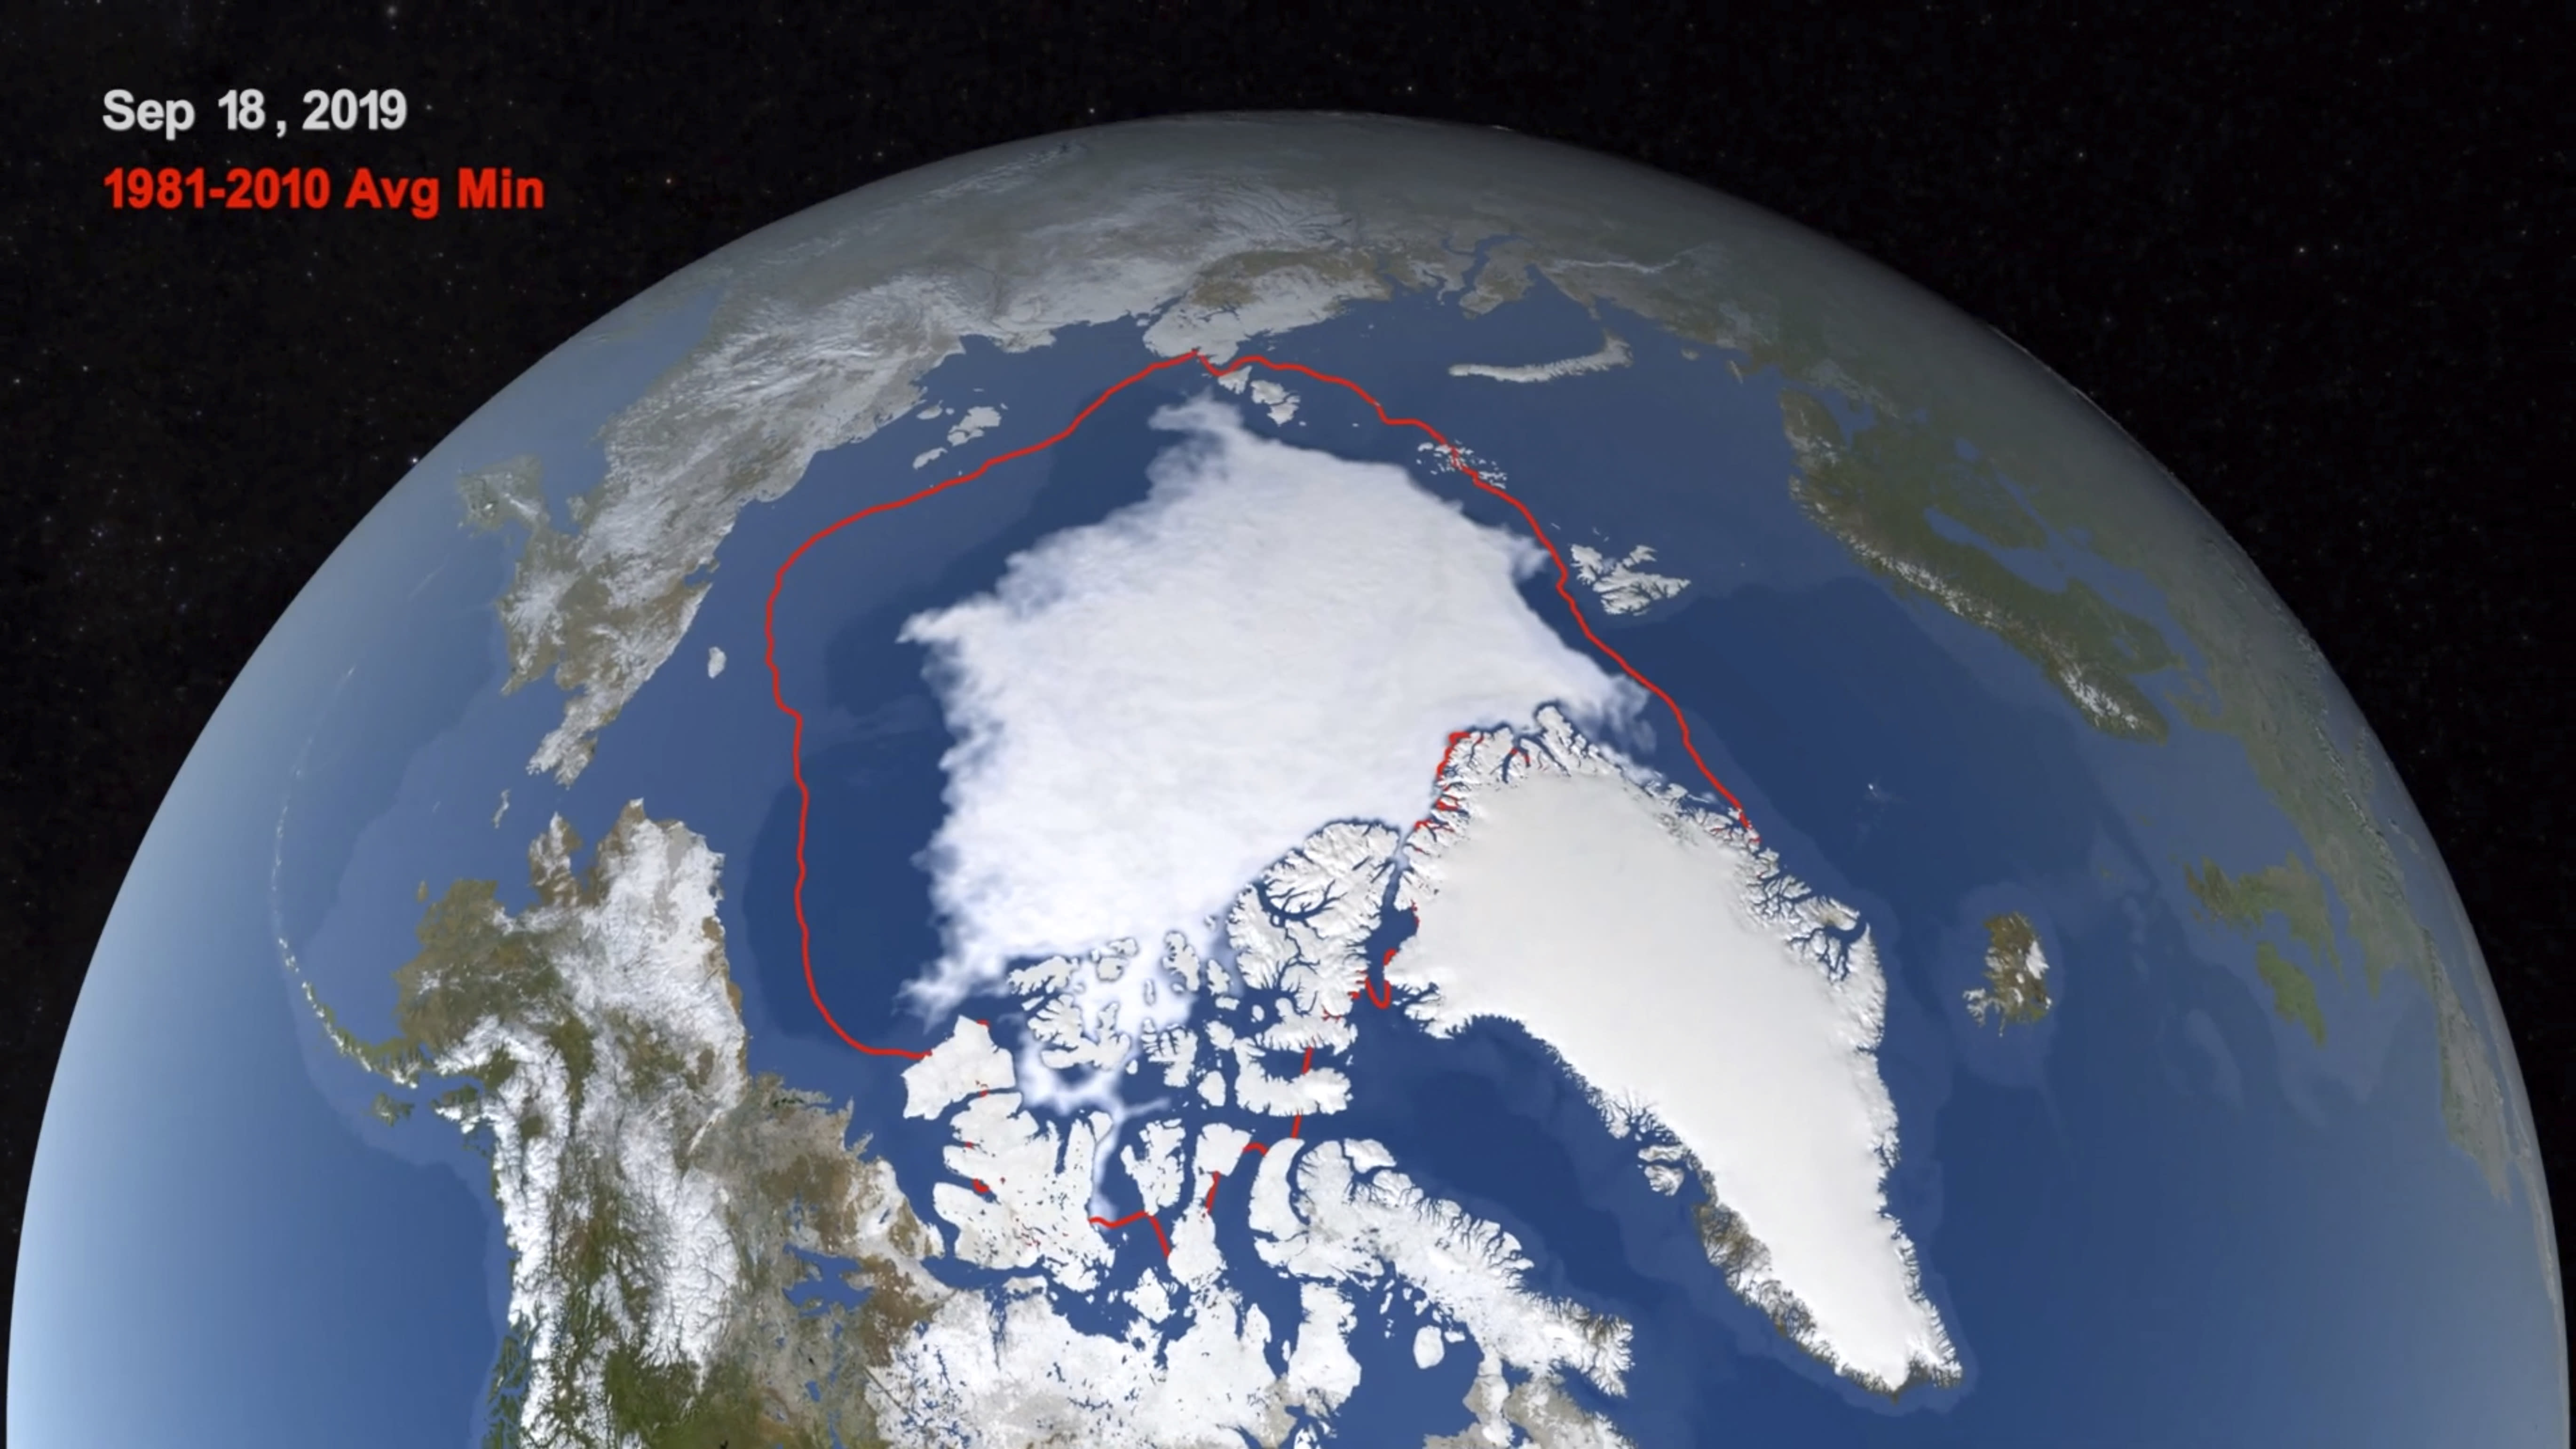 """This image from video provided by NASA shows the likely 2019 minimum extent of ice in the Arctic Sea on Sept. 18, 2019, compared with the average minimum from 1981-2010. Articles circulating online in early October 2019 wrongly suggest that NASA has rejected human responsibility for climate change and, instead, attributed the phenomenon to variations in Earth's axis and tilt. """"Oh for heaven's sake,"""" Kate Marvel, a research scientist for NASA, said in an email response to the claim. She told The Associated Press that scientists at the federal agency believe as much as 100 percent of current warming could be caused by greenhouse gas emissions, which humans have """"emitted a lot of."""" (Trent Schindler/NASA via AP)"""